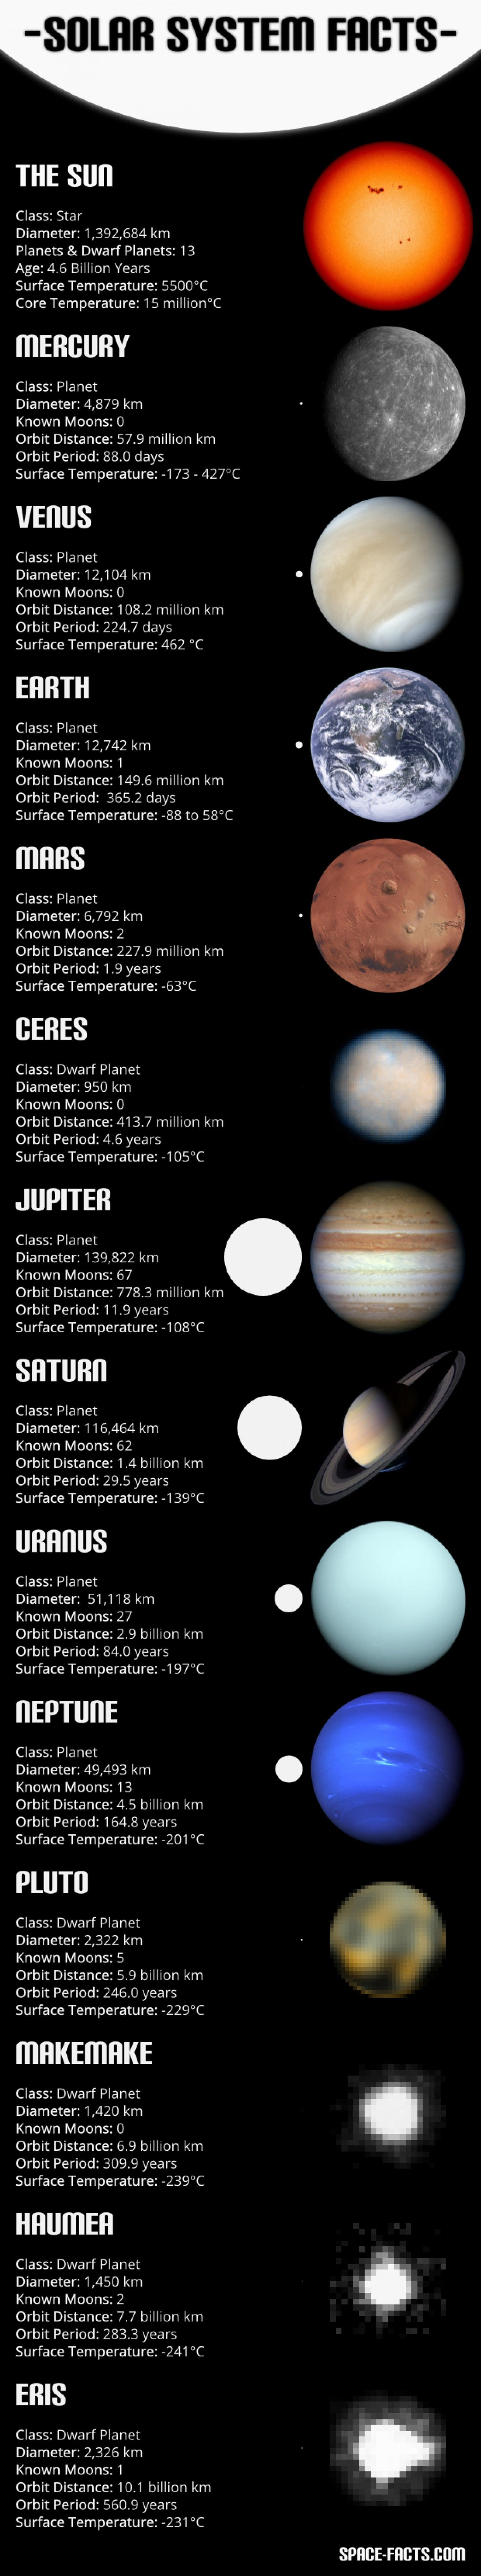 Solar System Facts Infographic - clean, clear, and bright ...